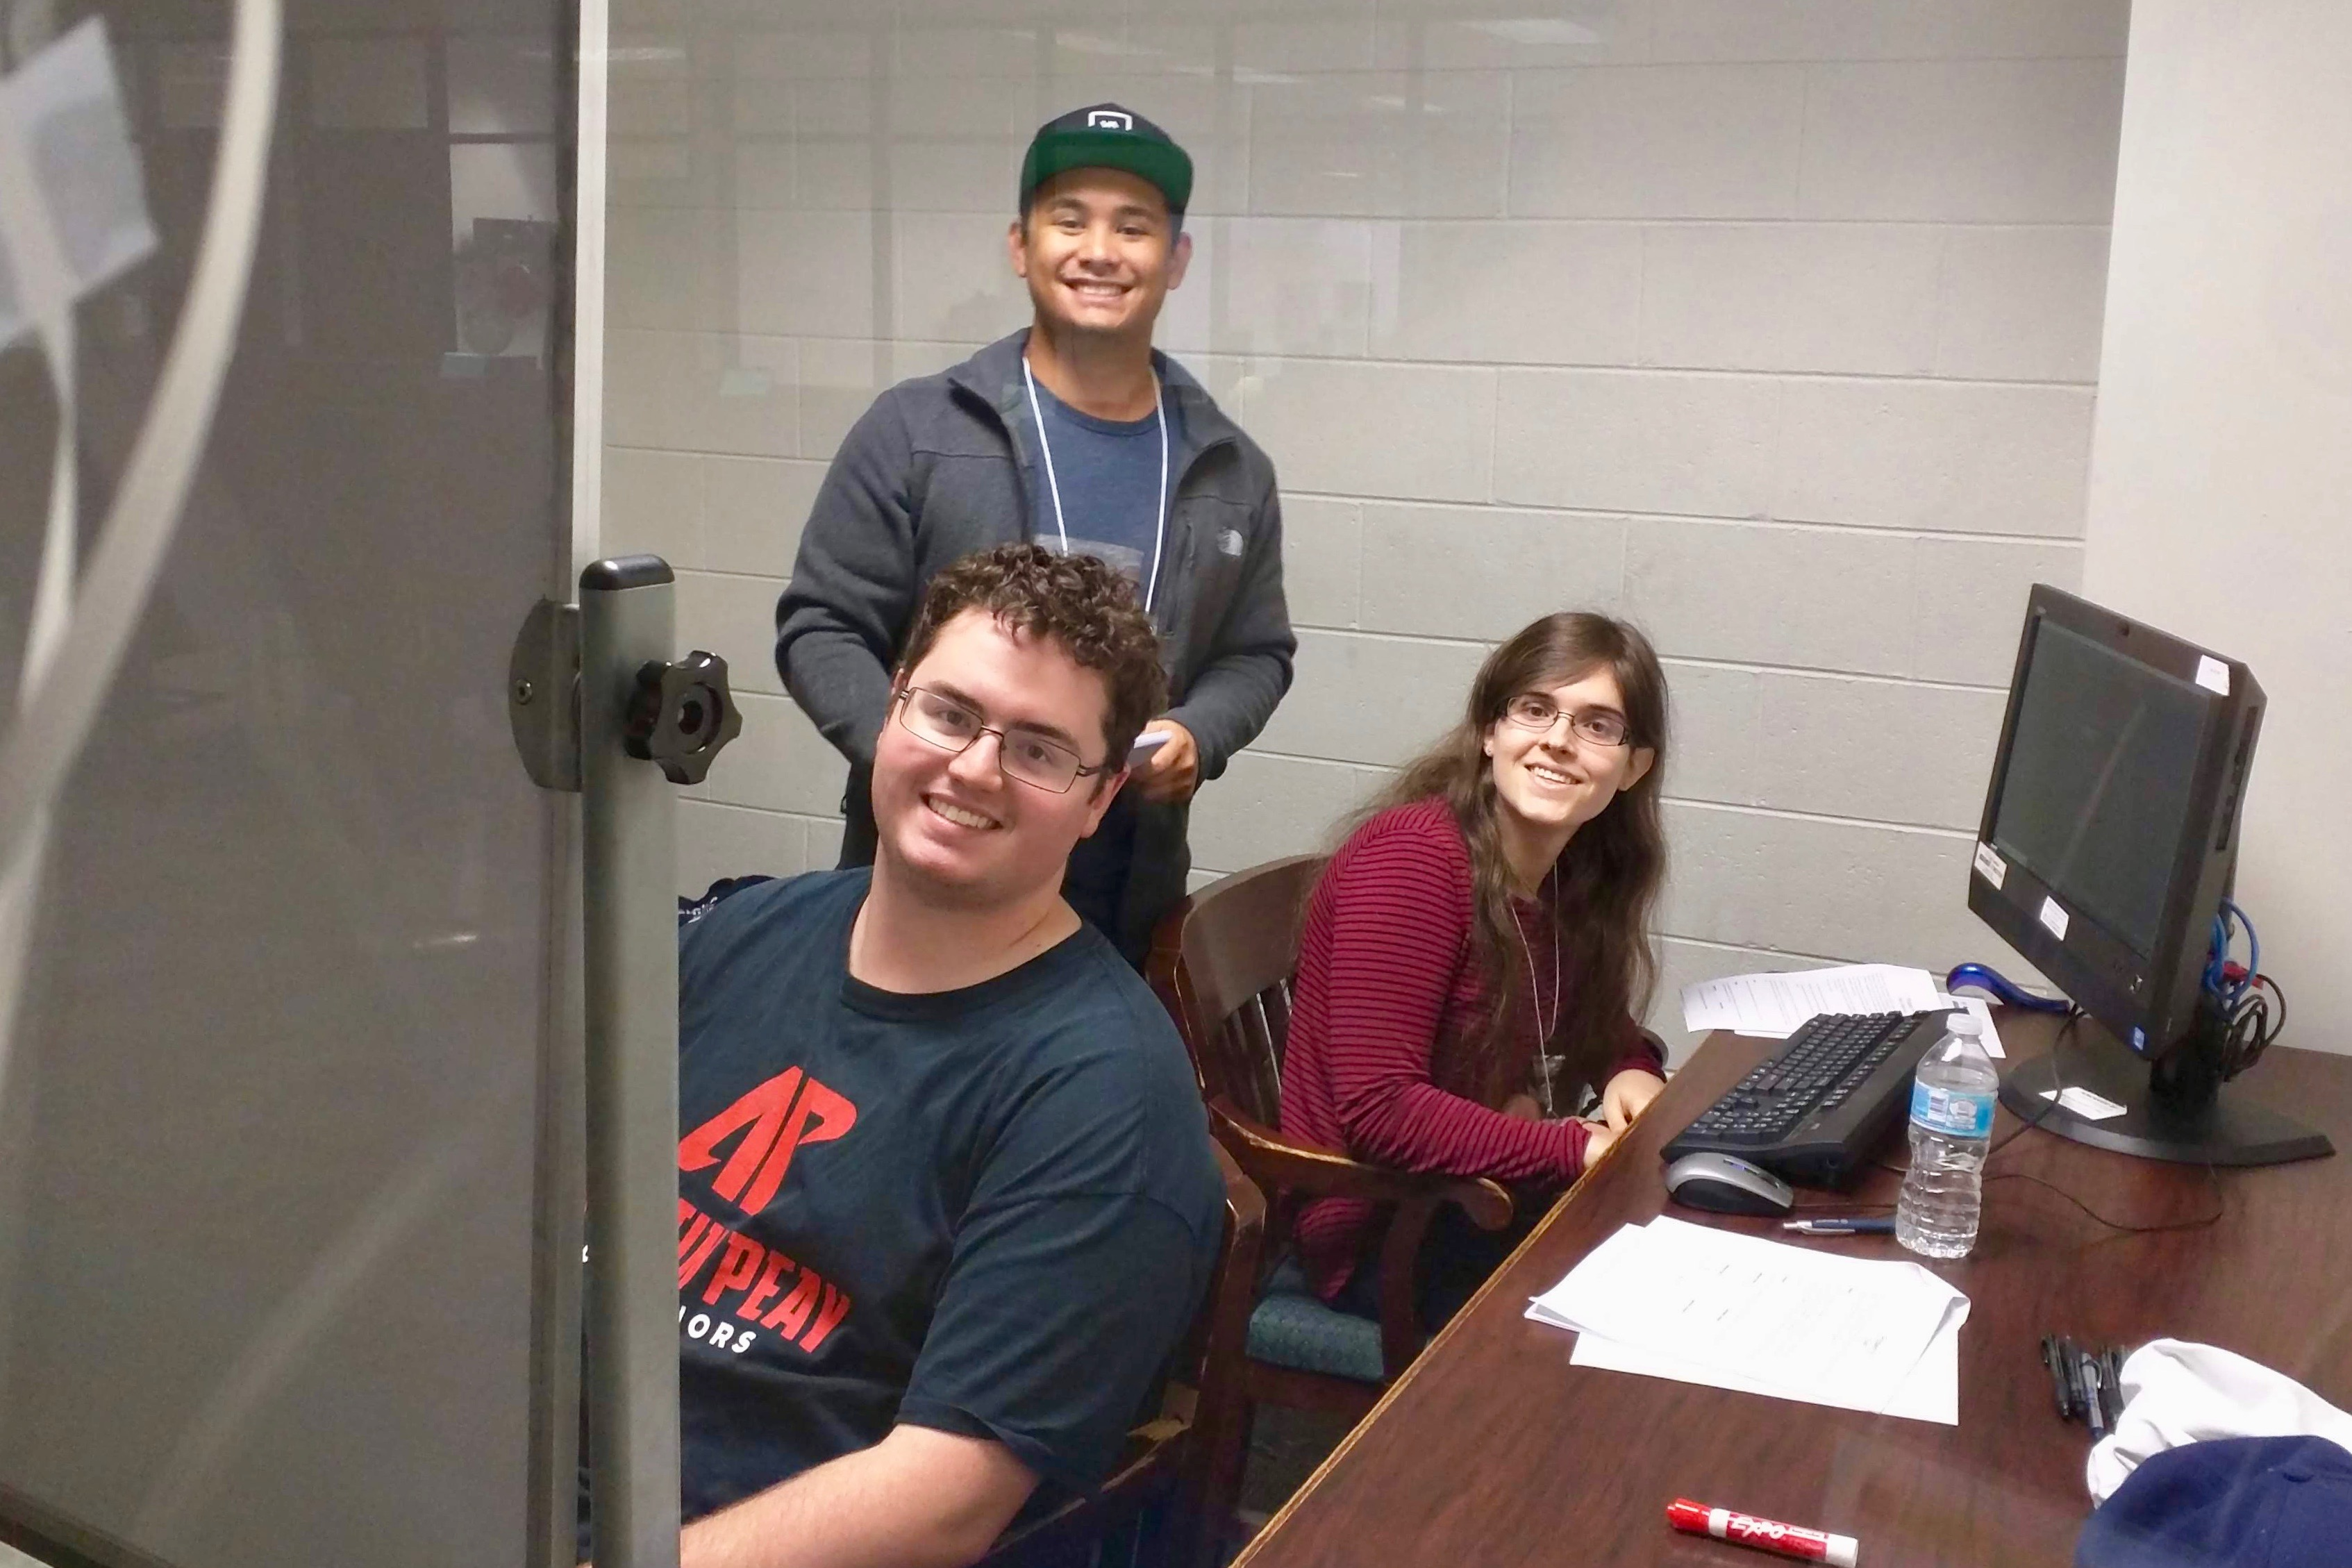 Austin Peay student team 'null' zeroes in at speed programming contest